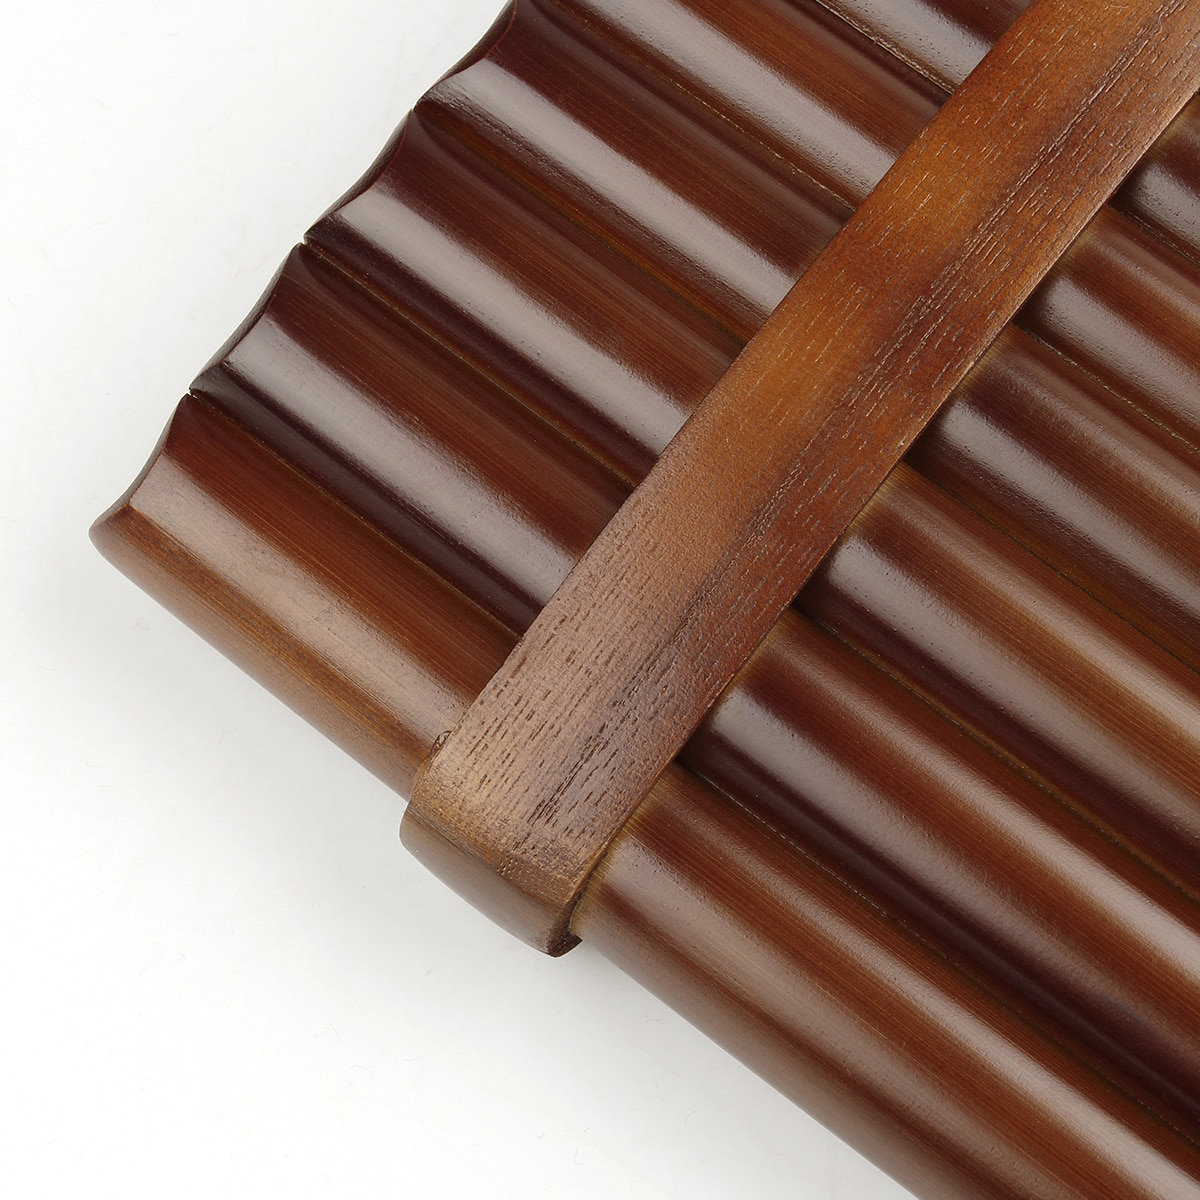 18 Pipes  Pan Flute F Key Folk Musical Instruments Brown Colour Flute De Pan Woodwind Instrument Handmade Pan Pipes enlarge